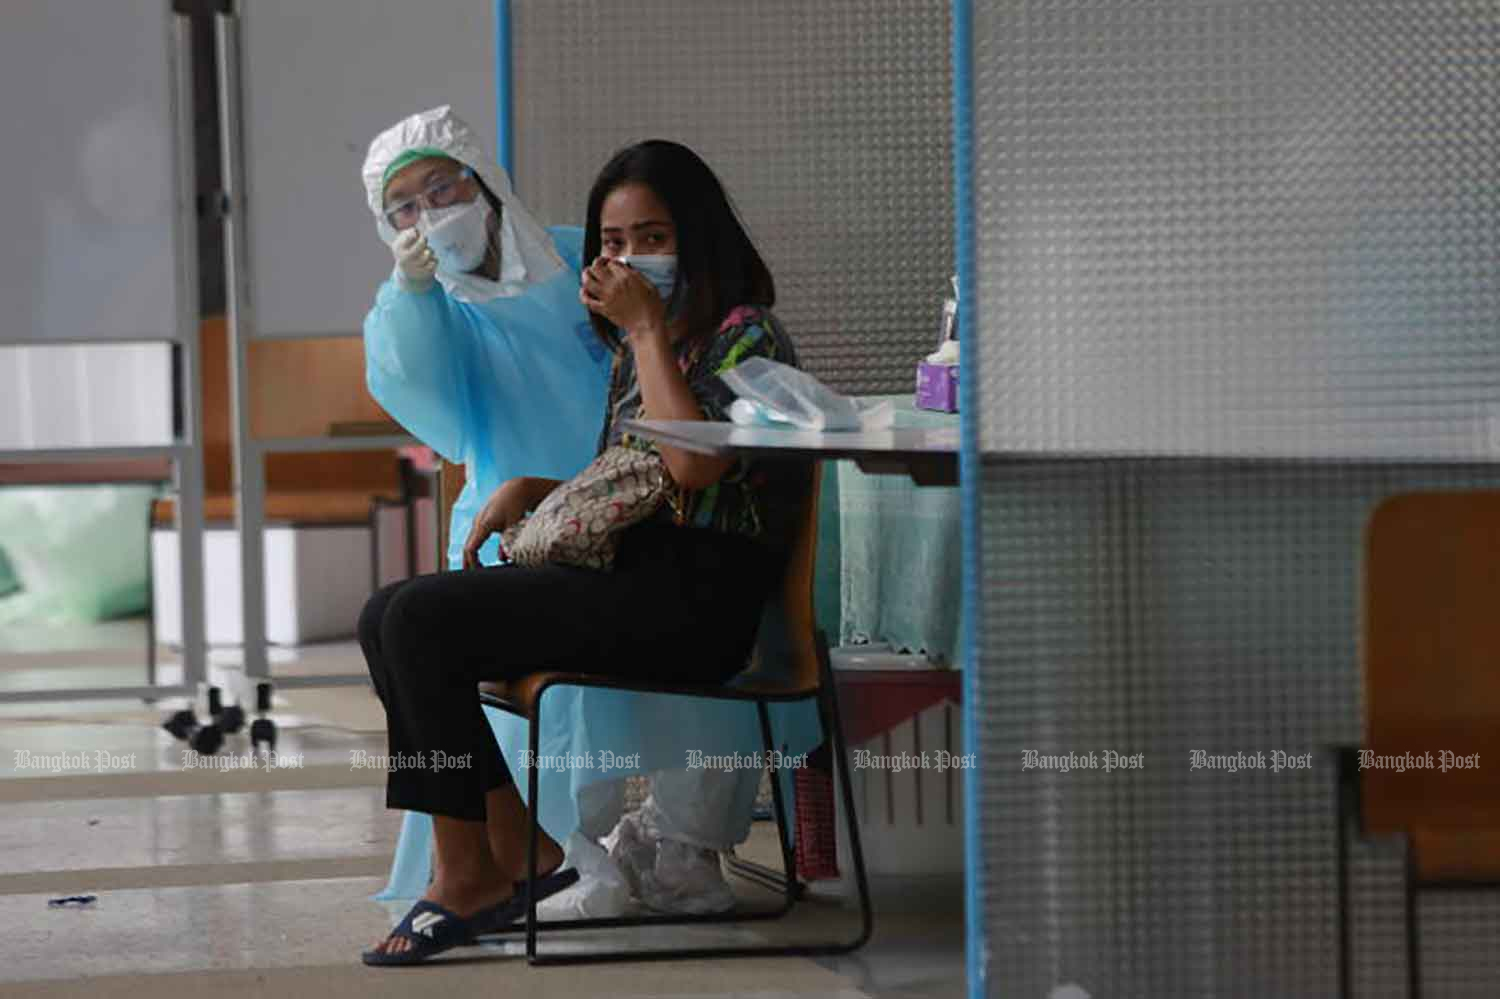 A disease control worker advises a social security fund member about the process of free Covid-19 testing in Bangkok on Wednesday. (Photo: Arnun Chonmahatrakool)